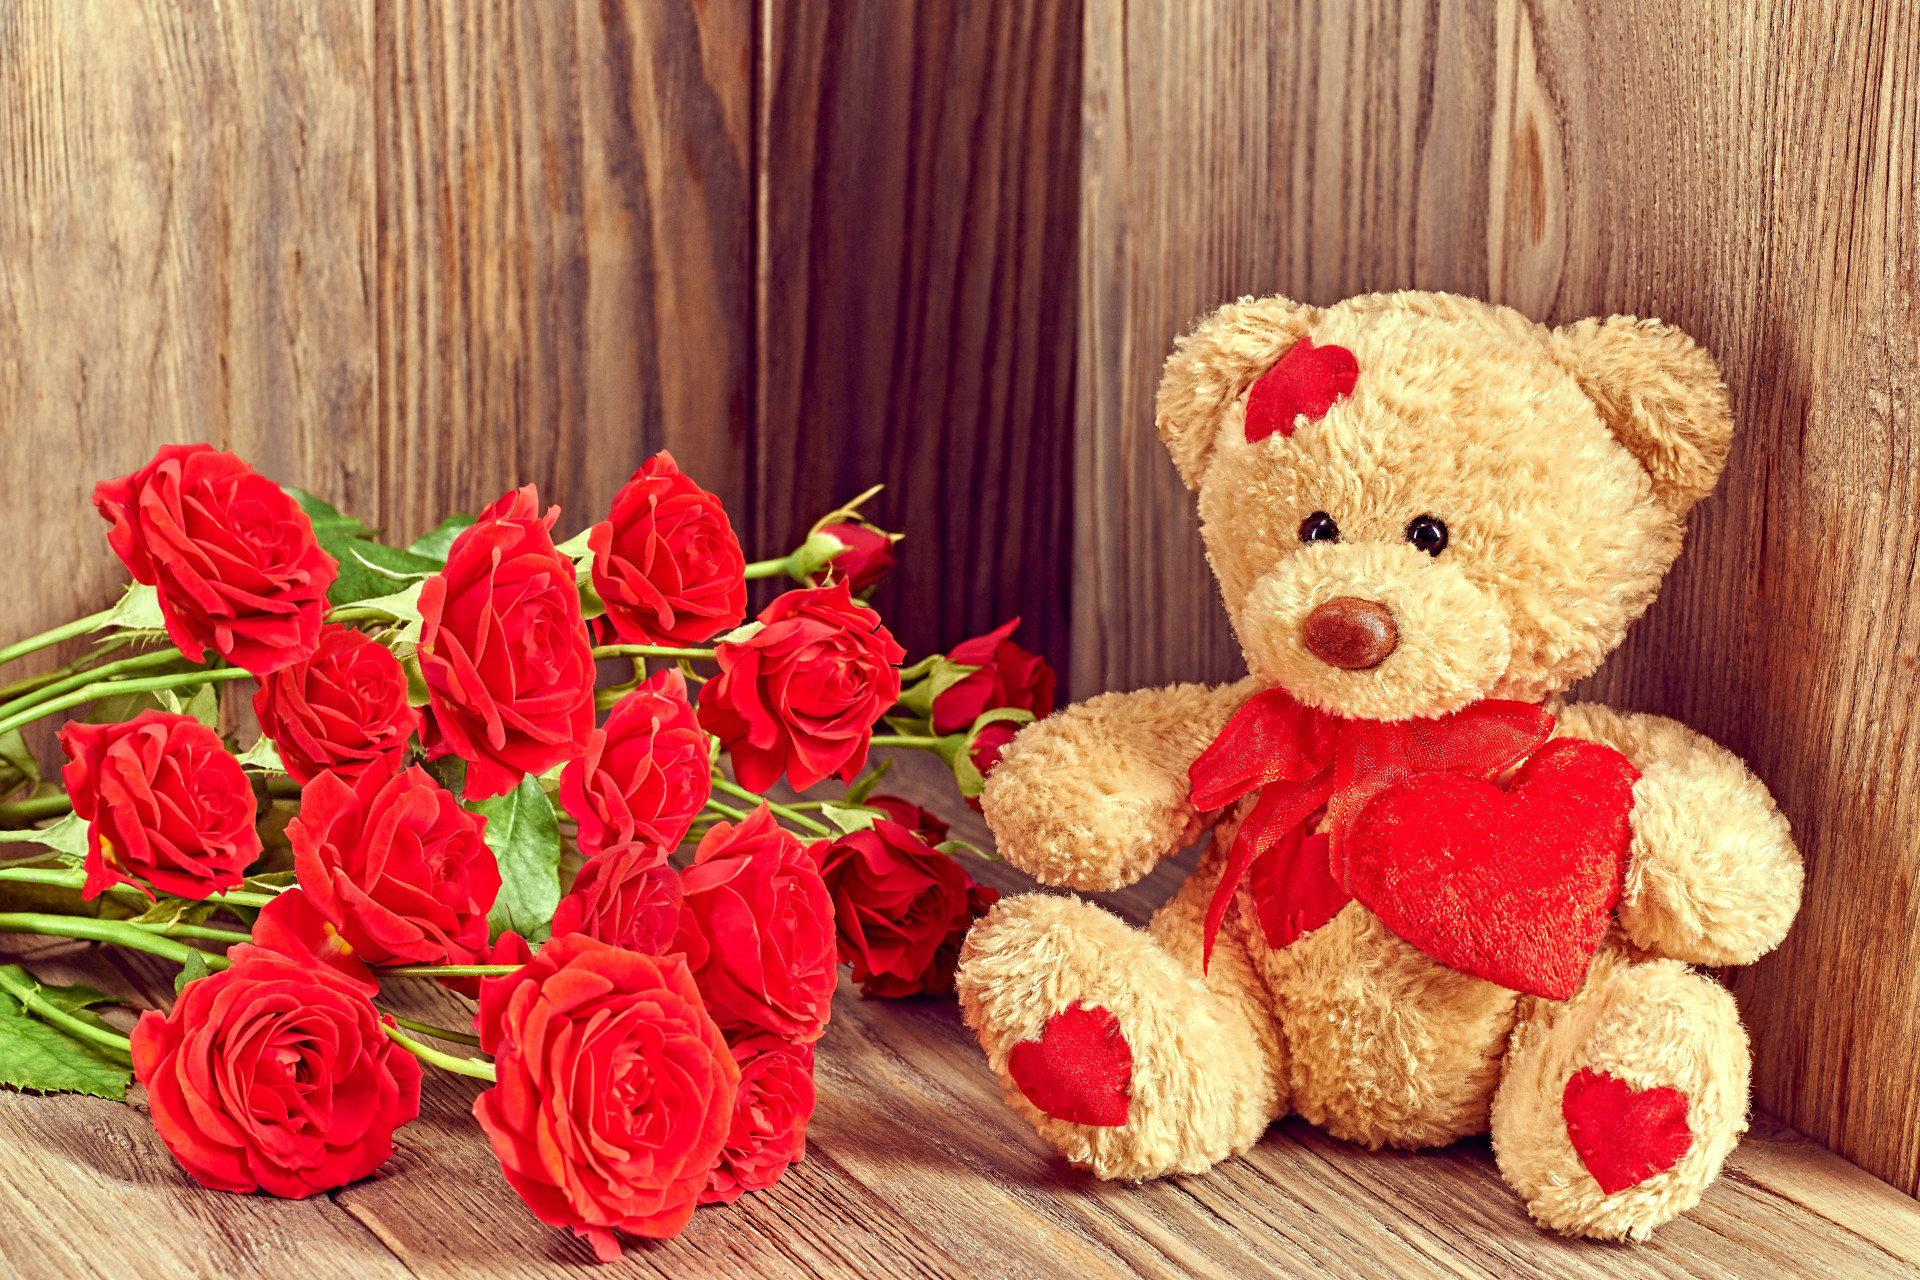 Res: 1920x1280, red roses cute teddy bear picture background wallpaper